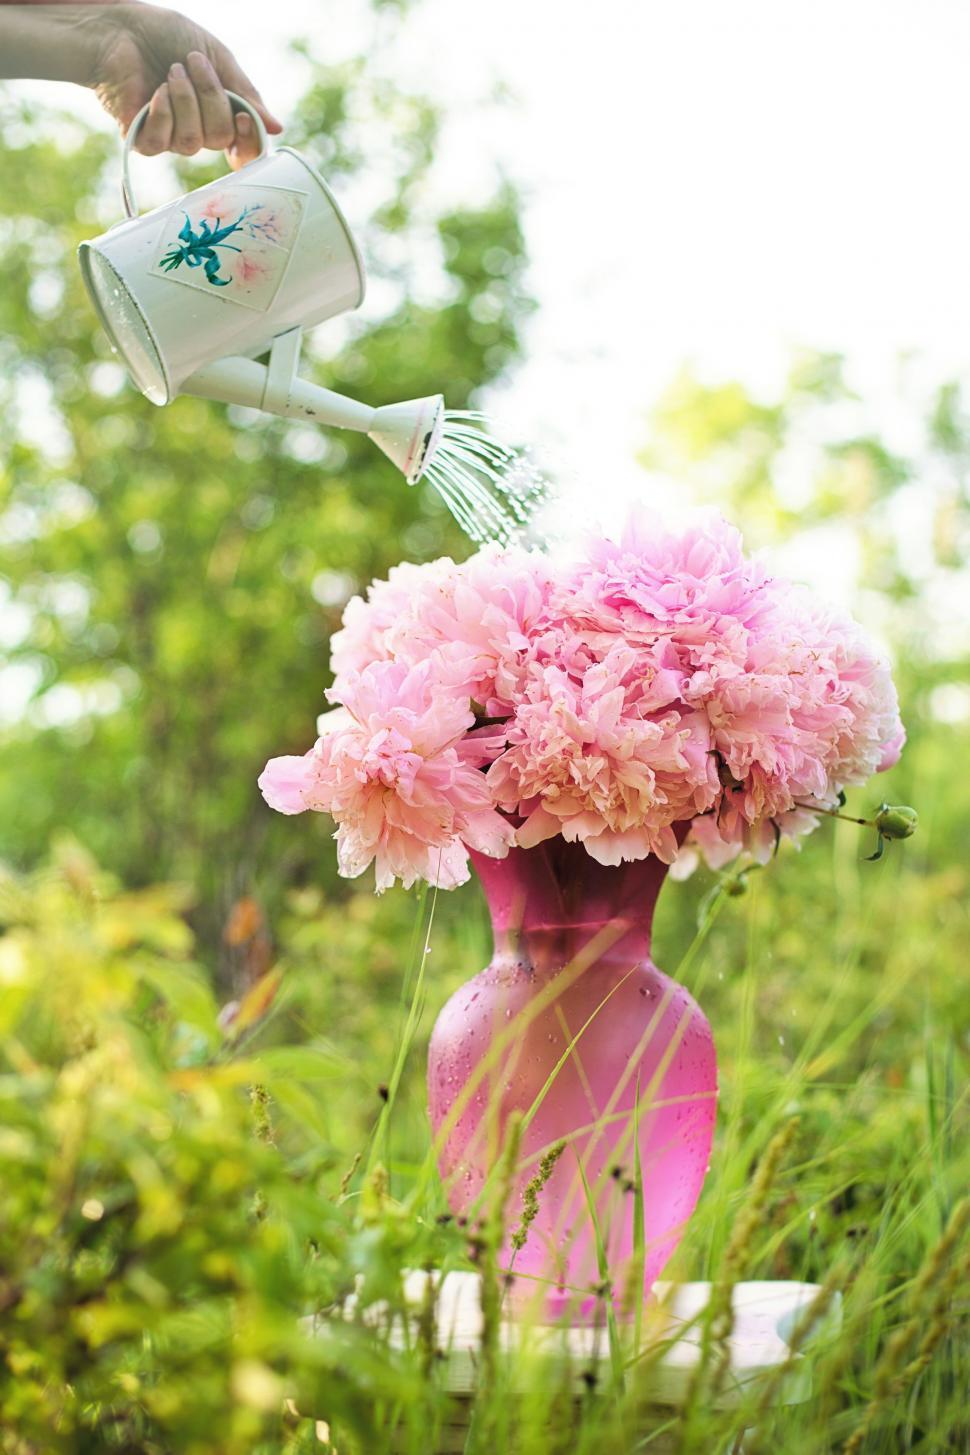 Download Free Stock Photo of Hand With Watering Can and Pink Flowers in Garden